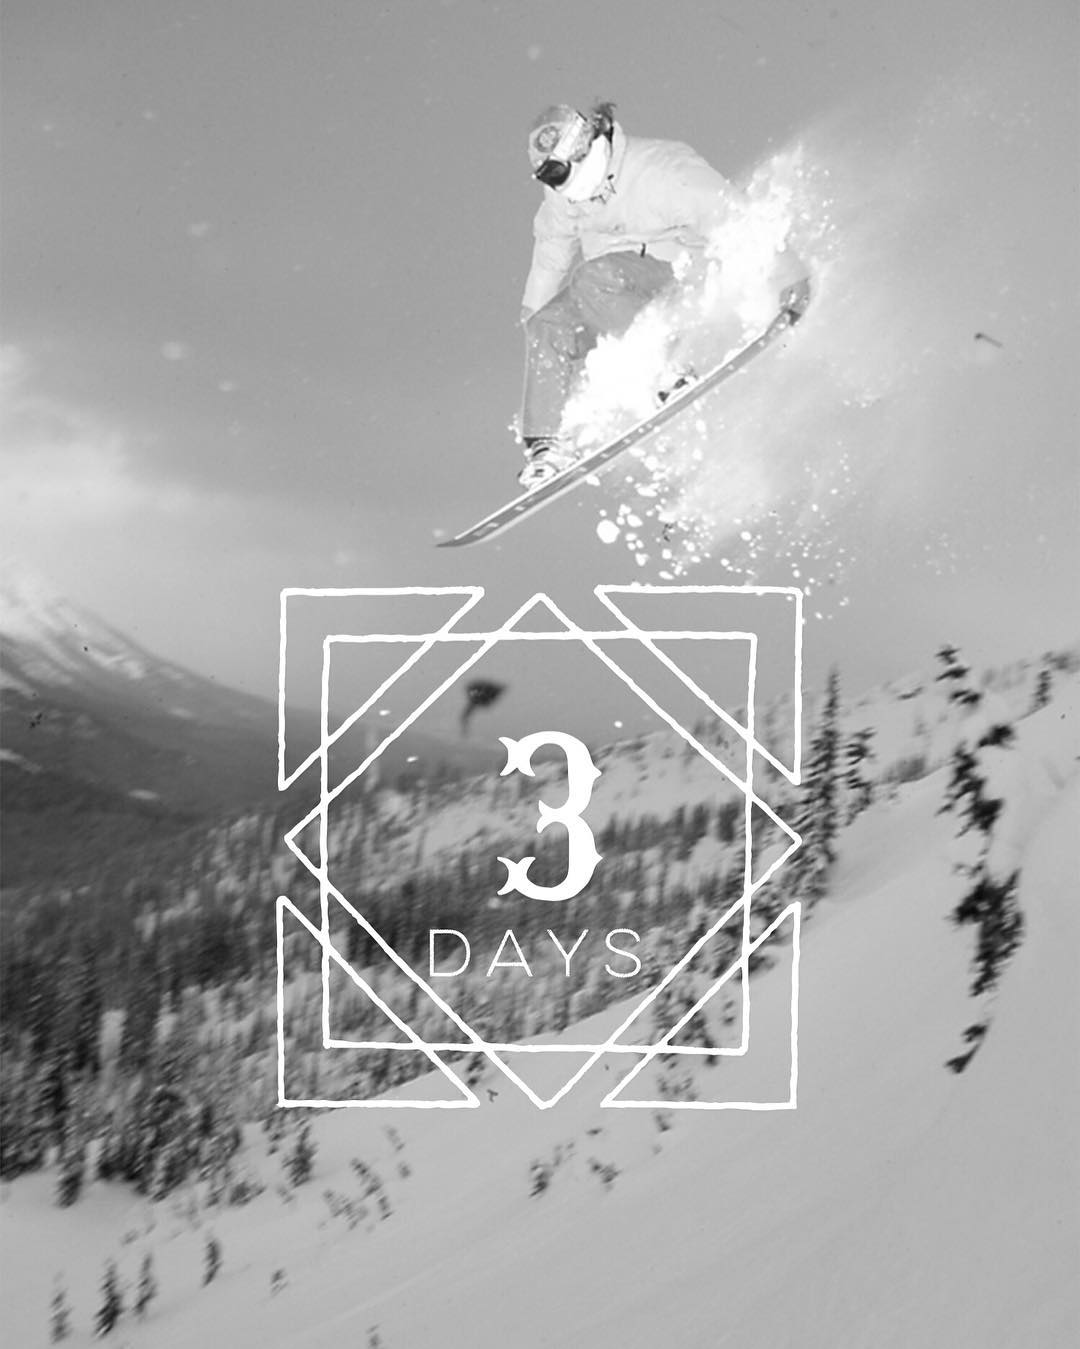 3 DAYS until the B4BC Snowboard + Music Festival at @sierra_at_tahoe! Join us this Saturday, April 2 to celebrate B4BC's 20th anniversary with music by @panicisperfect and NPR's pick of 2015, @thefamilycrest. There will also be a Photo + Art Exhibition...